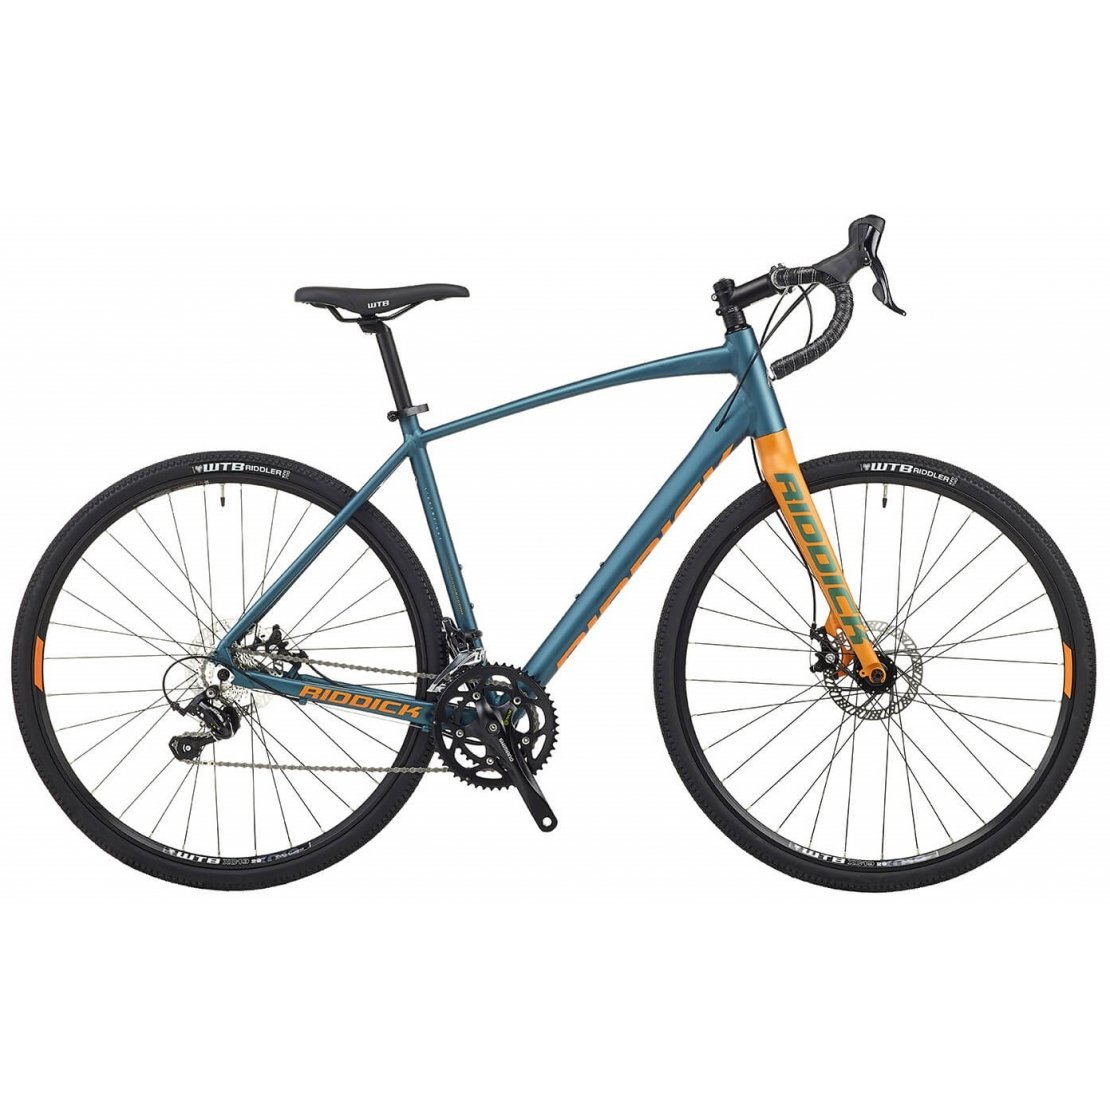 Riddick RDG4 700C 18 Speed Aluminium Gravel Bike 56cm